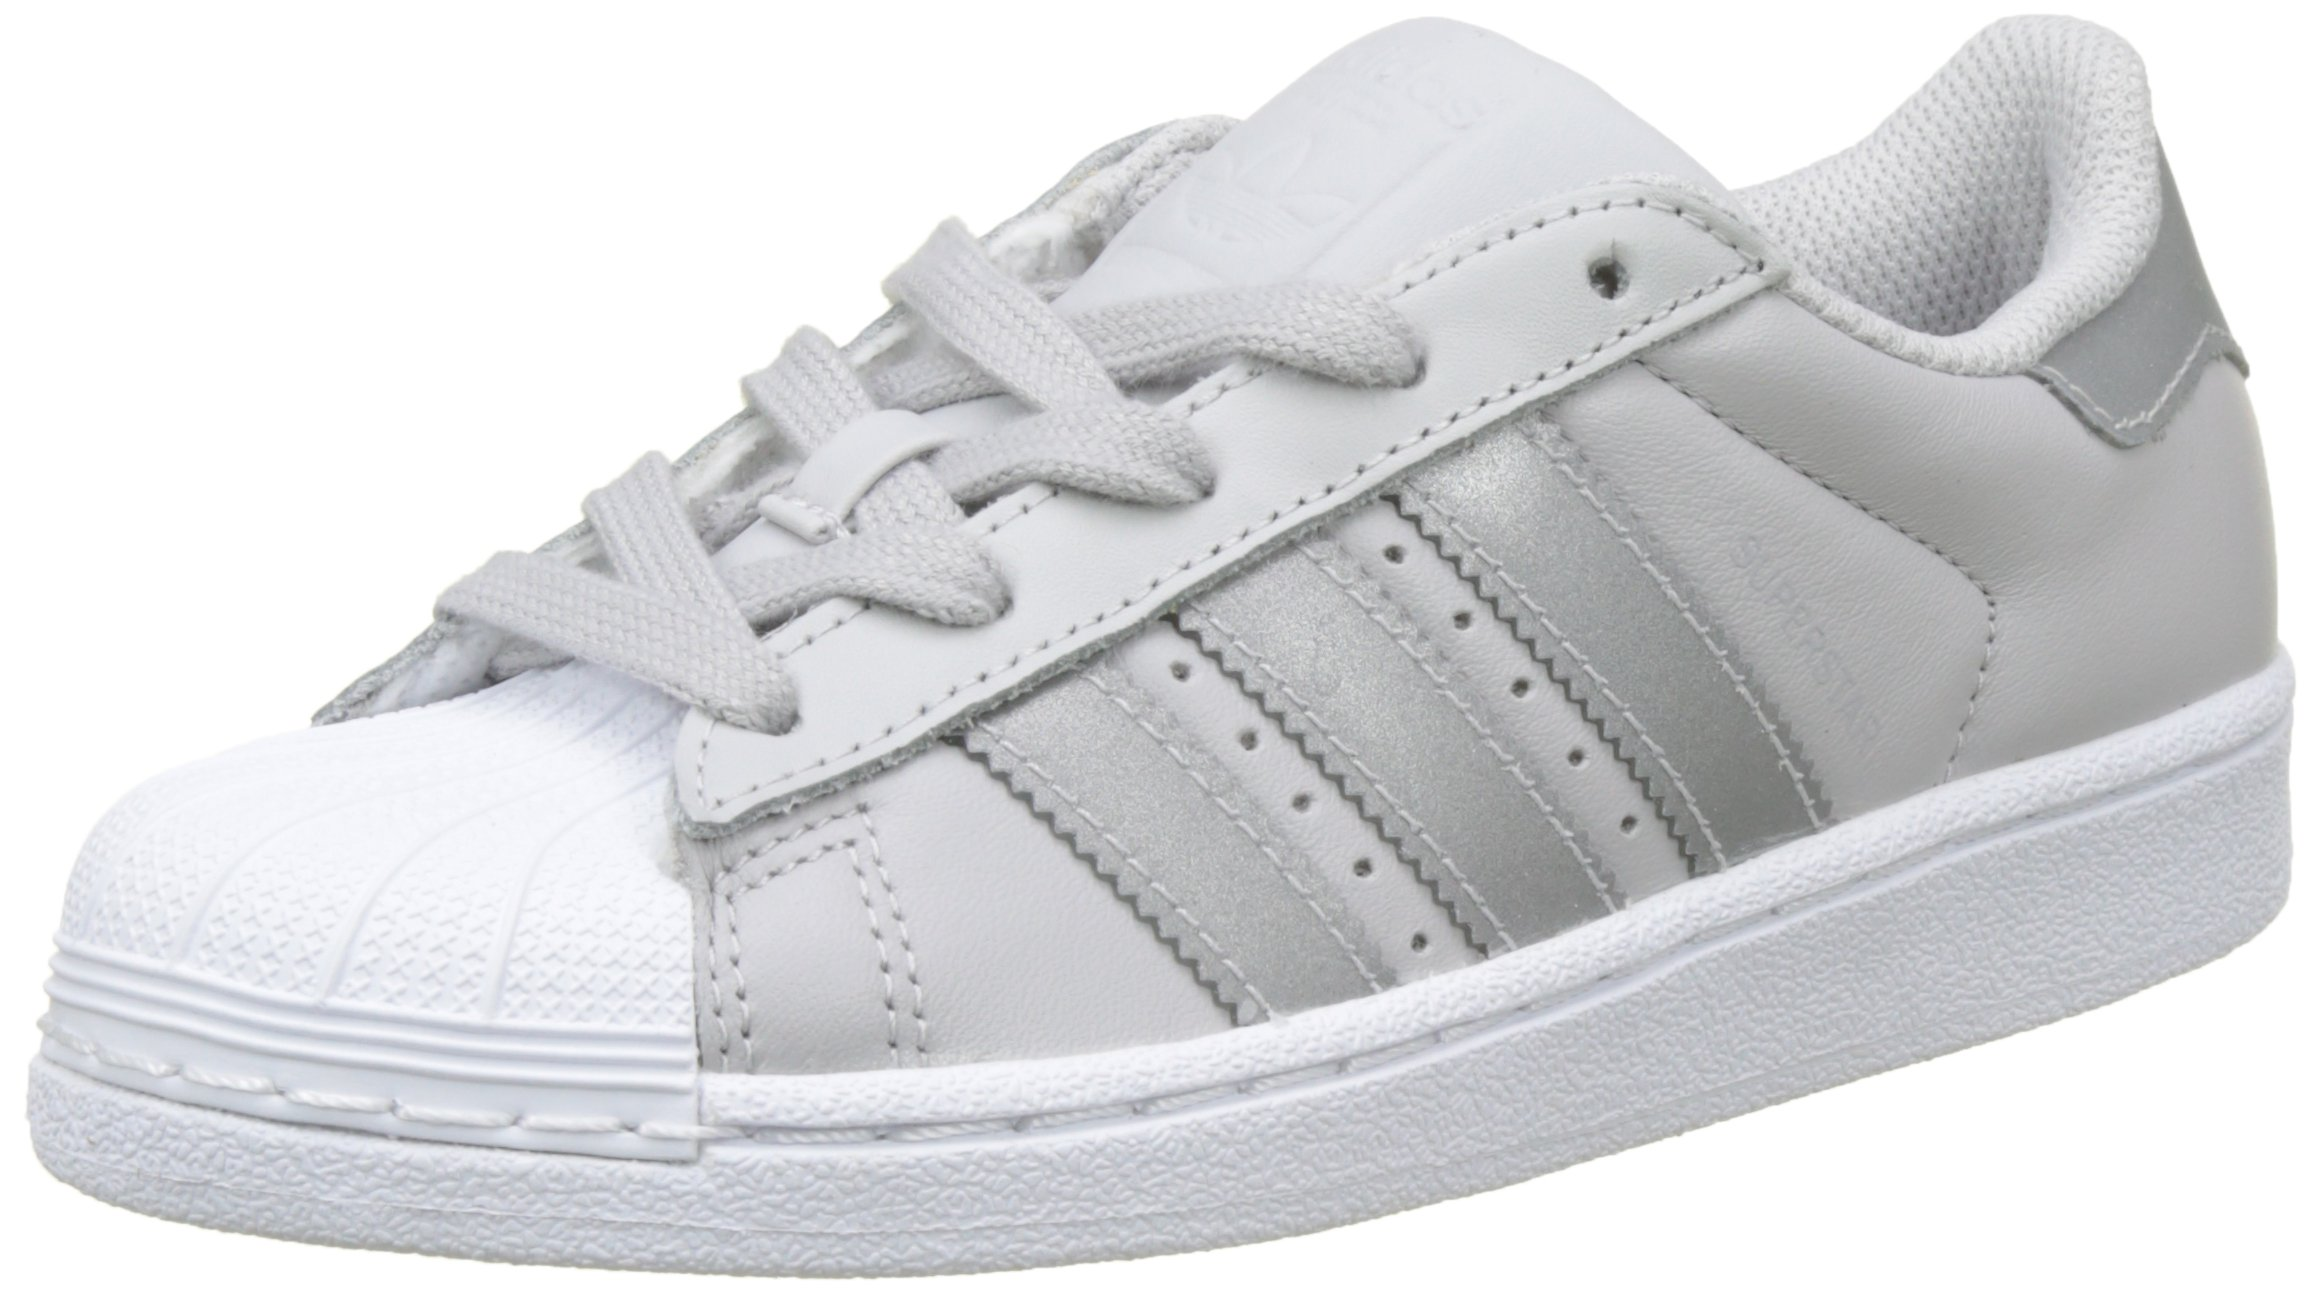 detailed look 5fa6a 3f2be adidas Originals Superstar, Zapatillas Unisex Niños